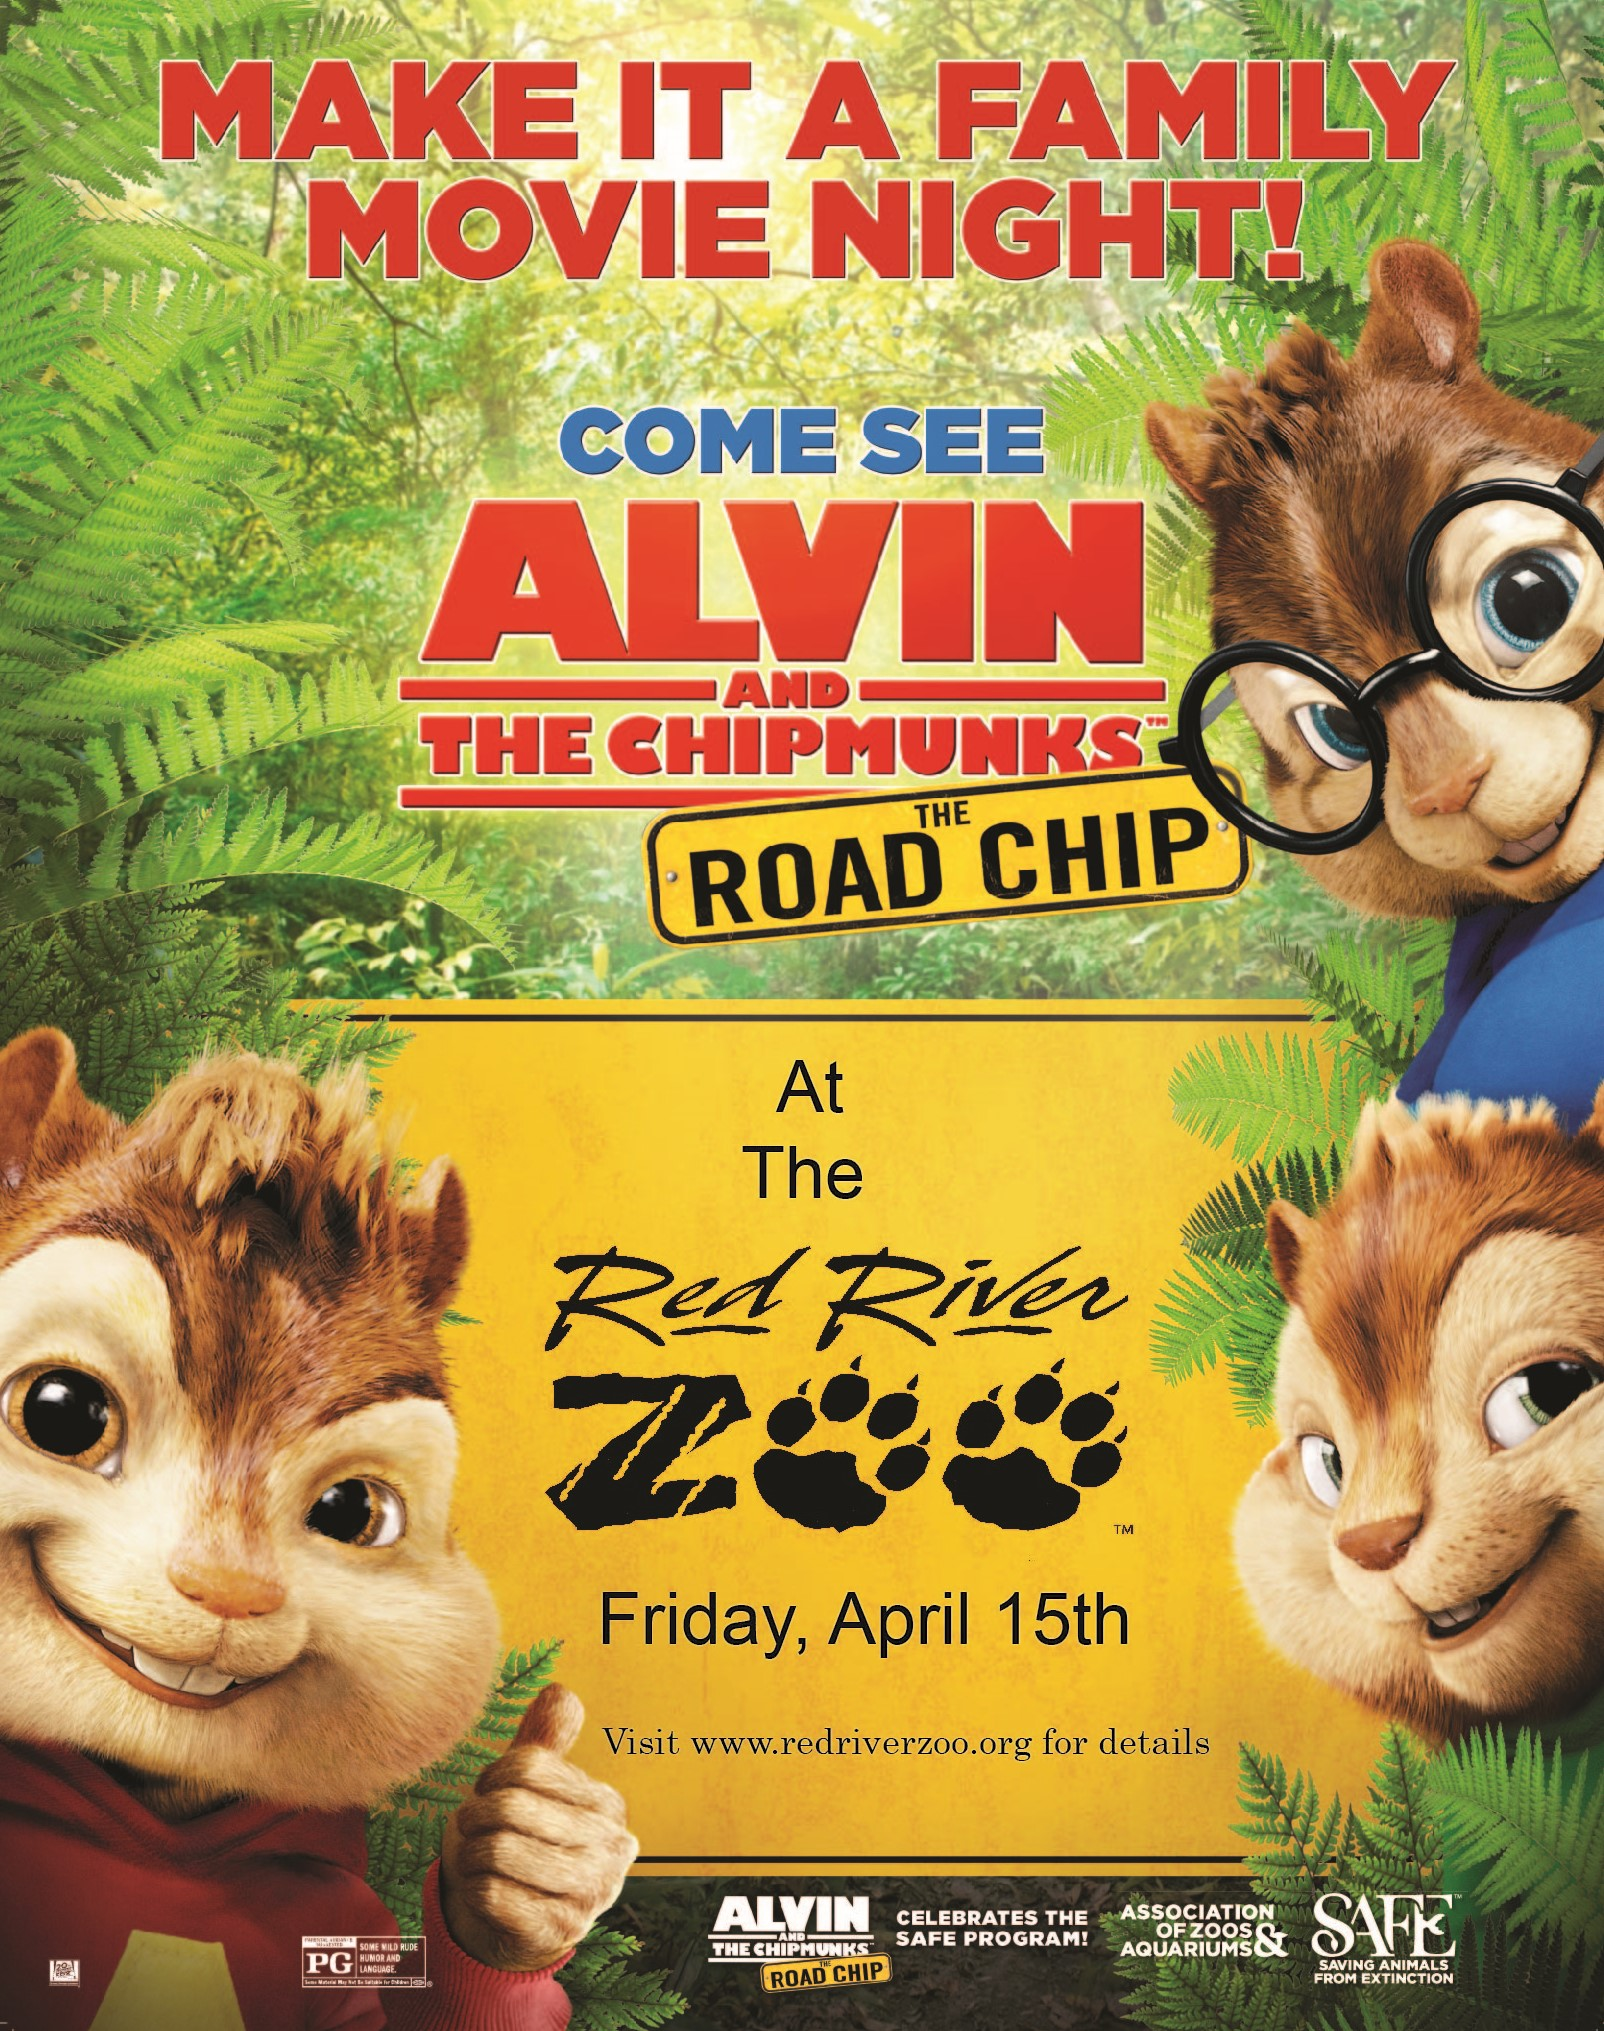 Alvin and the chipmunks 2017 serial